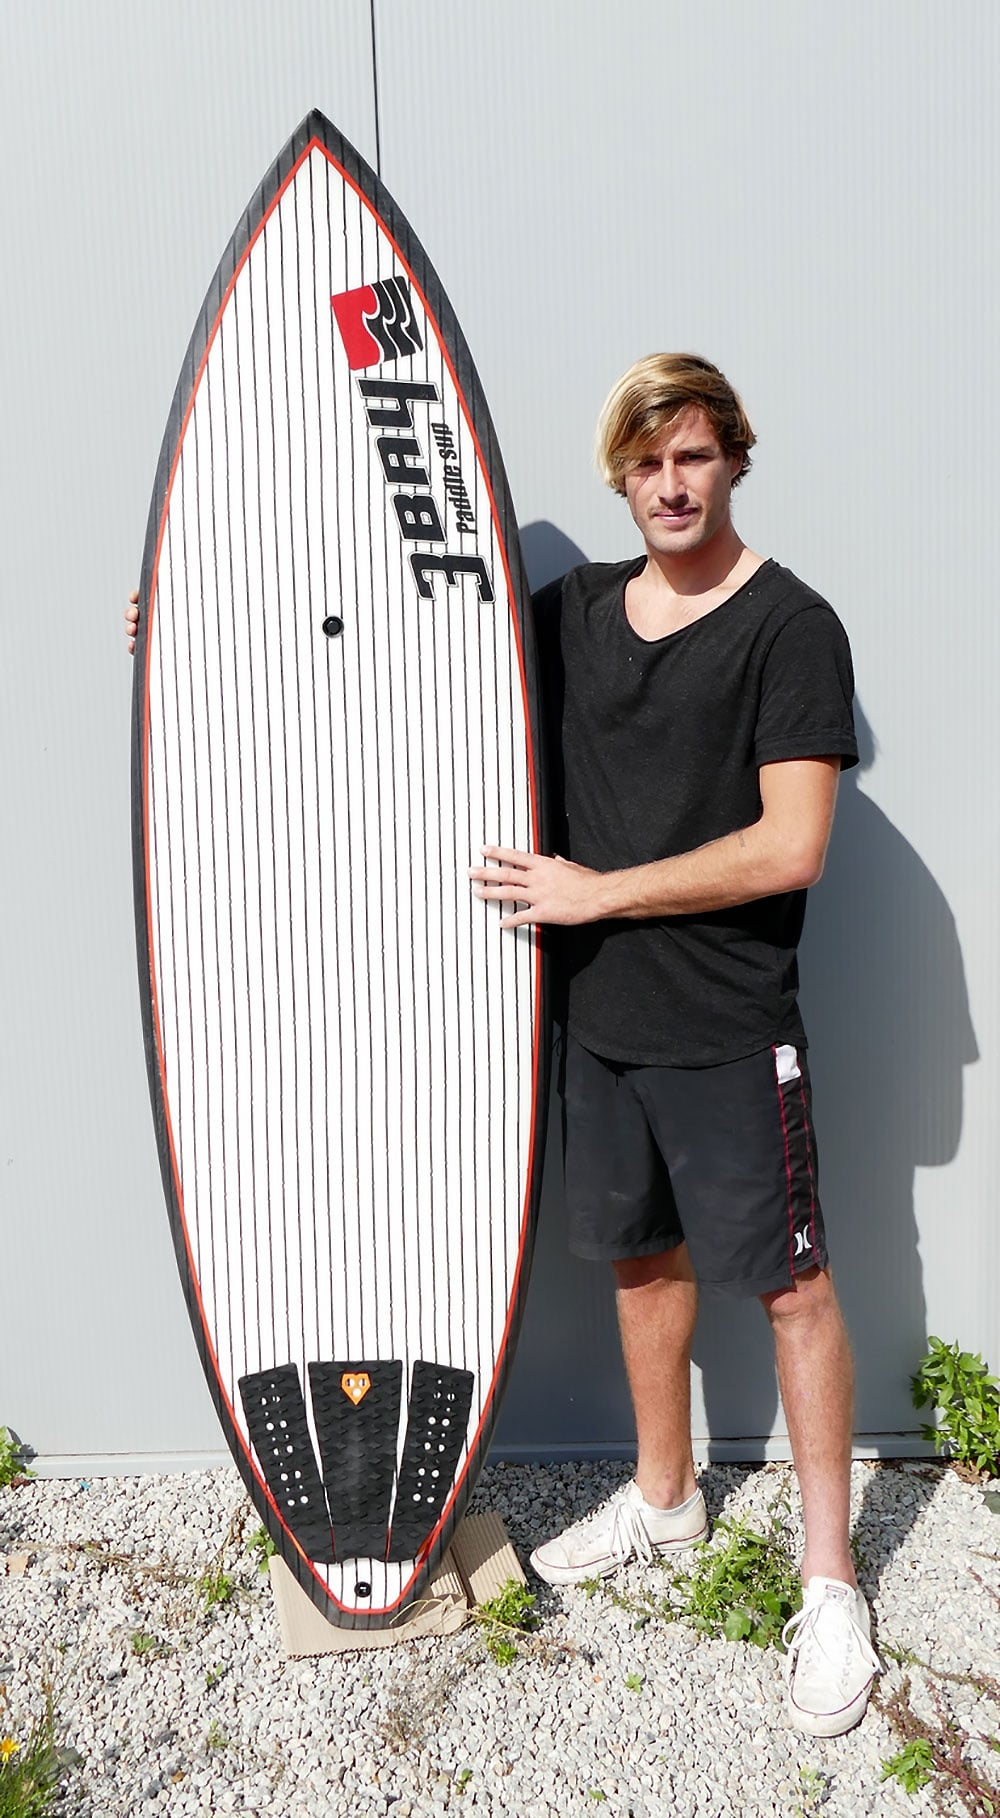 Le champion de stand up paddle Arthur Daniel rejoint le team 3Bay